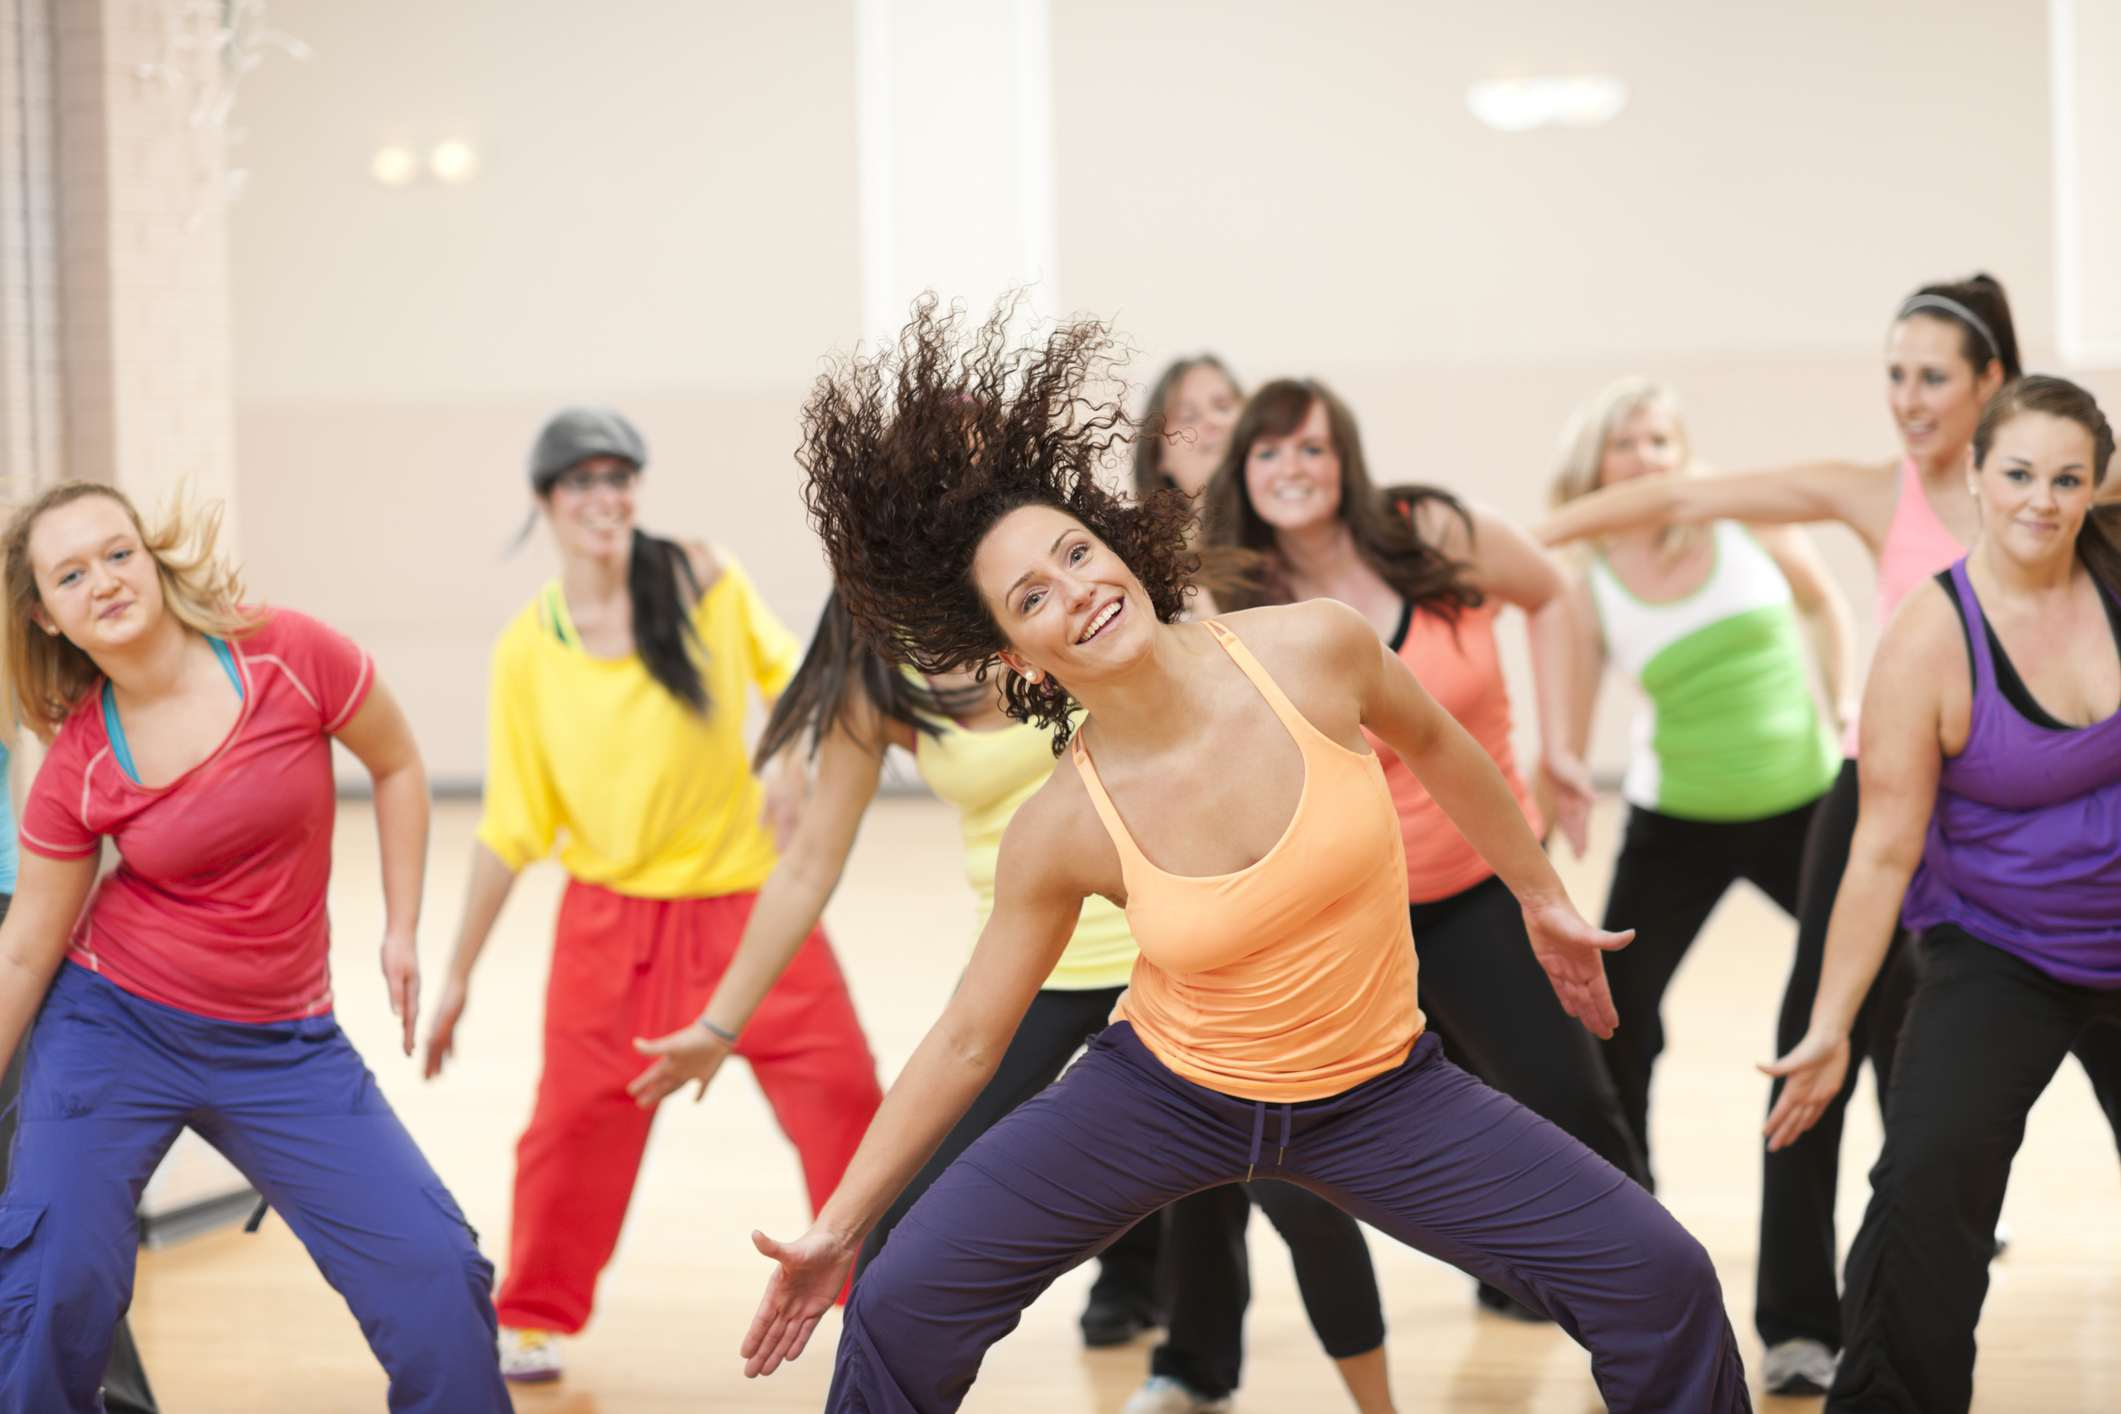 Female fitness instructor leading a dance class